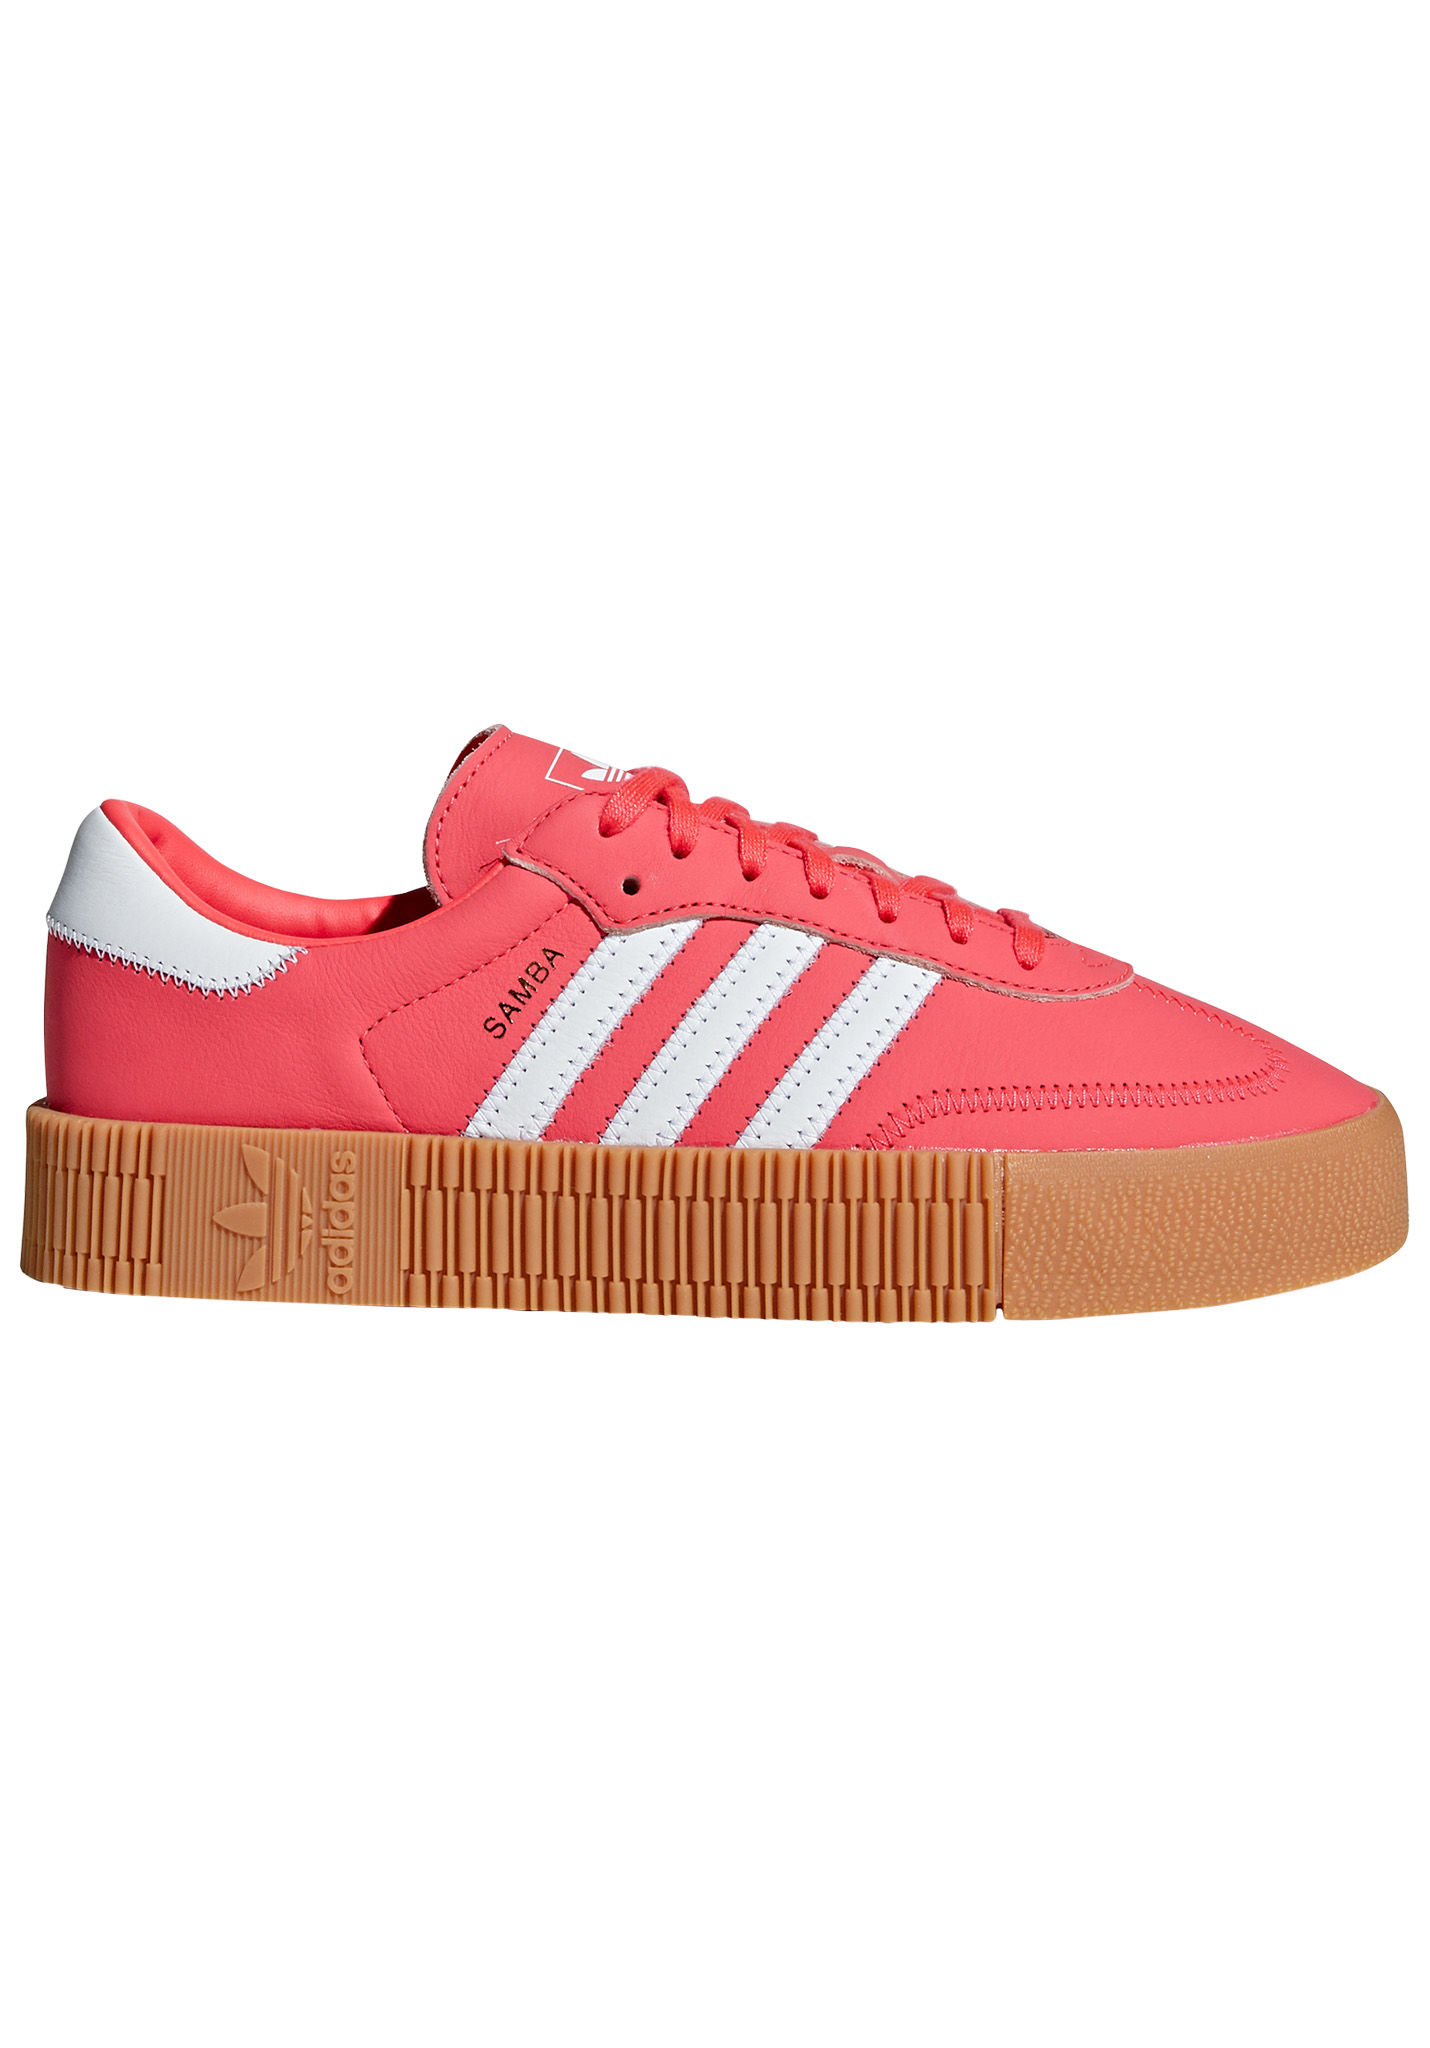 1bdff083324319 ADIDAS ORIGINALS Sambarose - Sneakers for Women - Red - Planet Sports